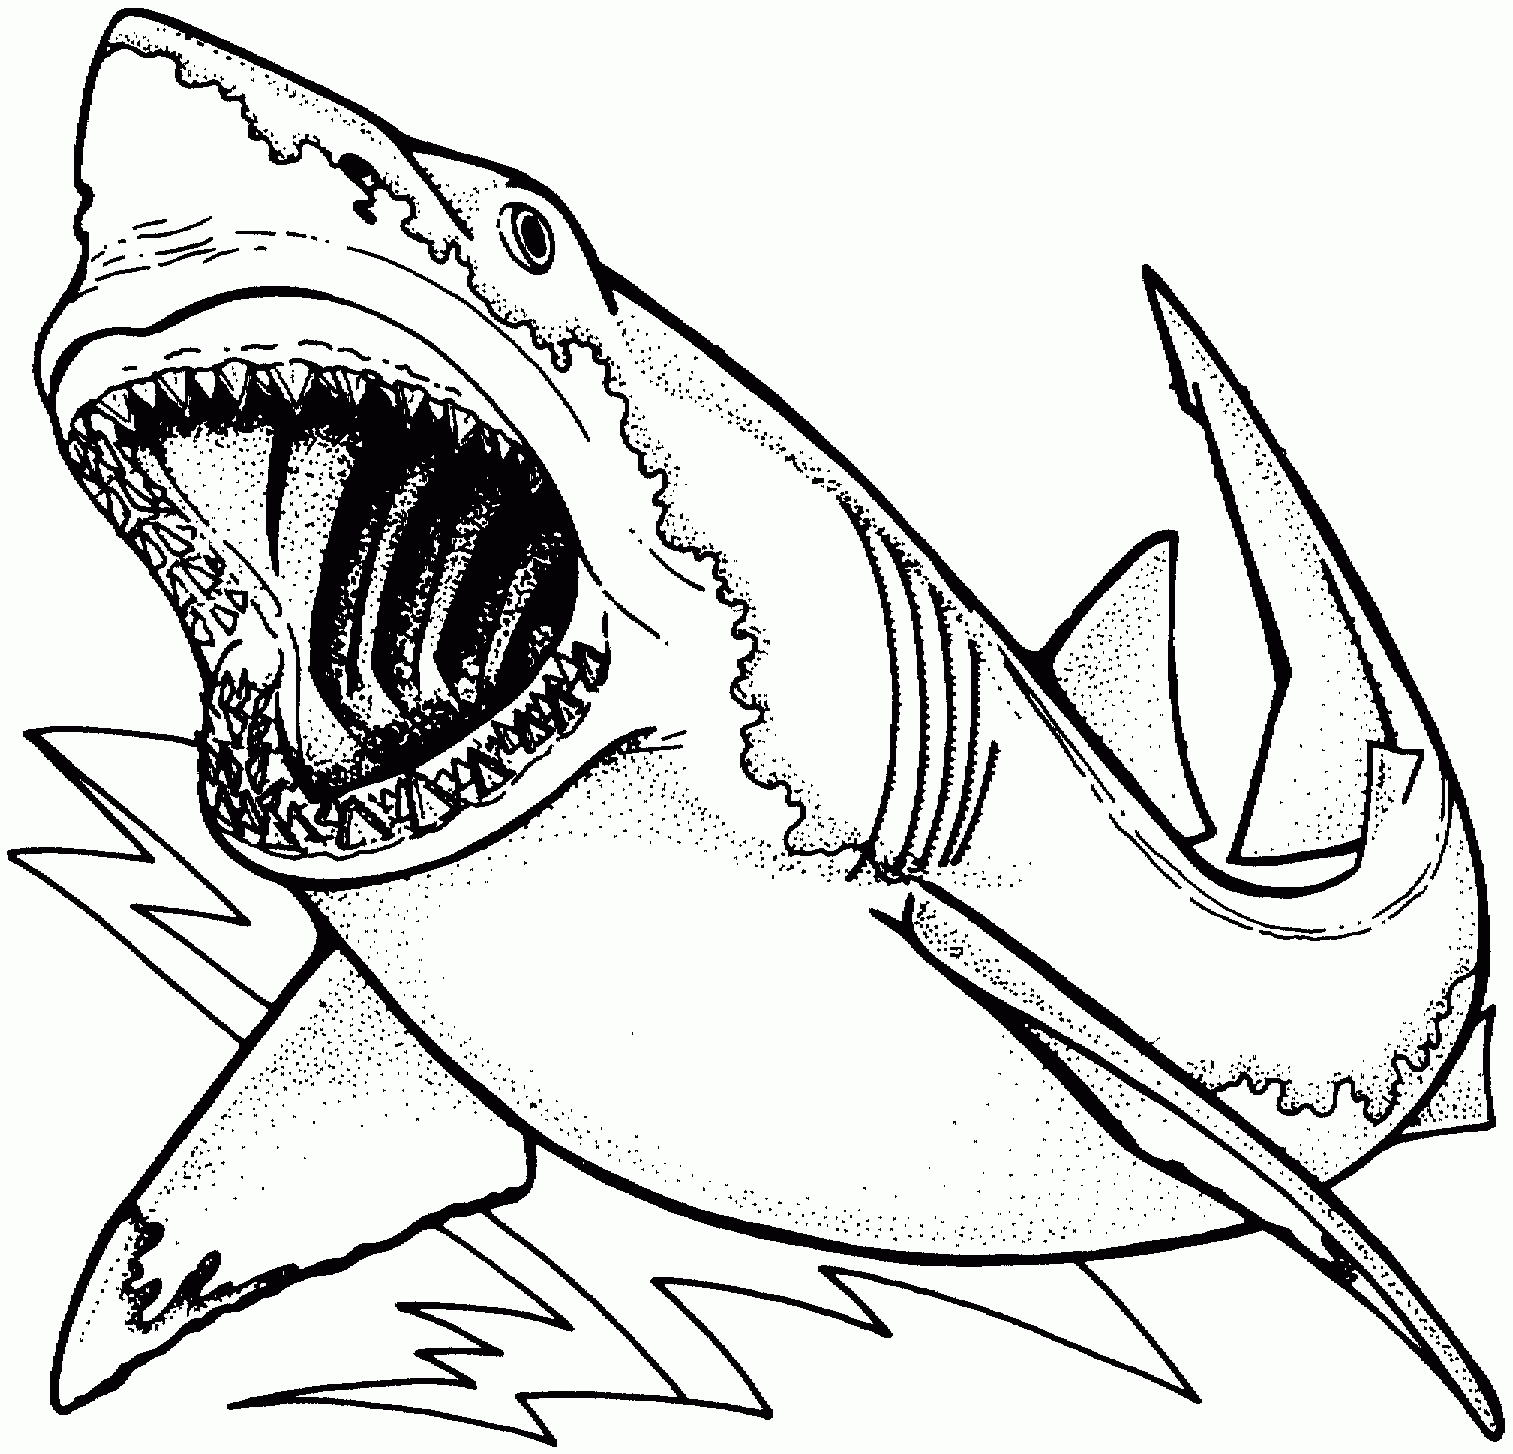 great white shark coloring page hungry shark coloring pages at getdrawings free download coloring great shark white page